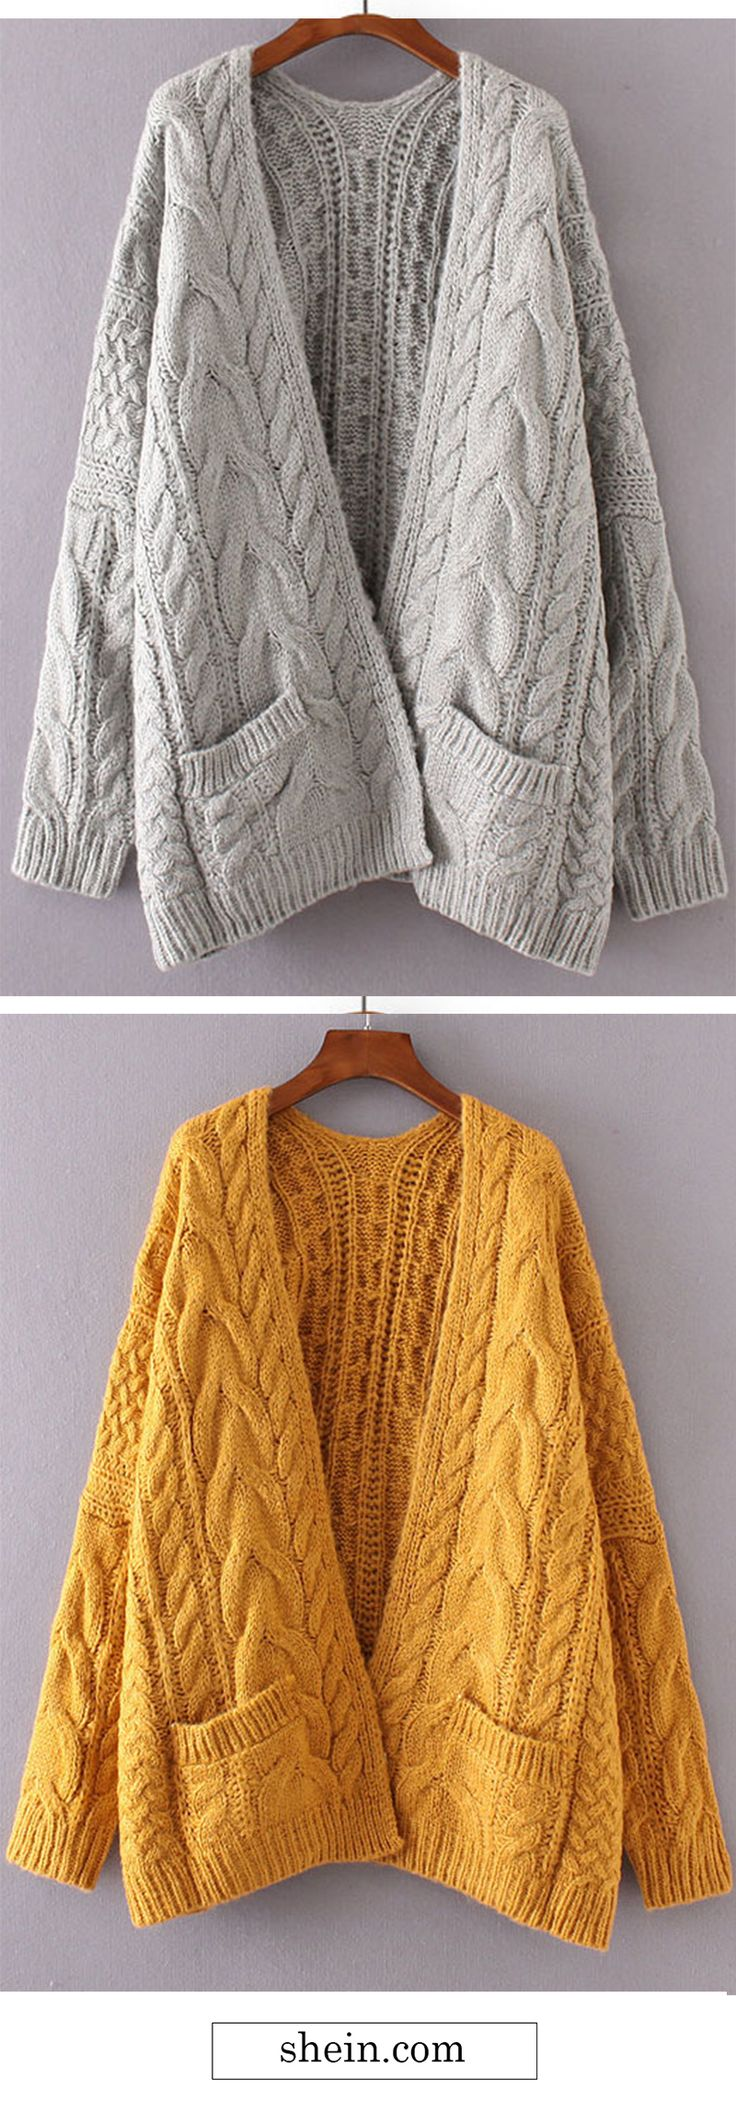 Best 25  Cable knit cardigan ideas on Pinterest | Knit cardigan ...